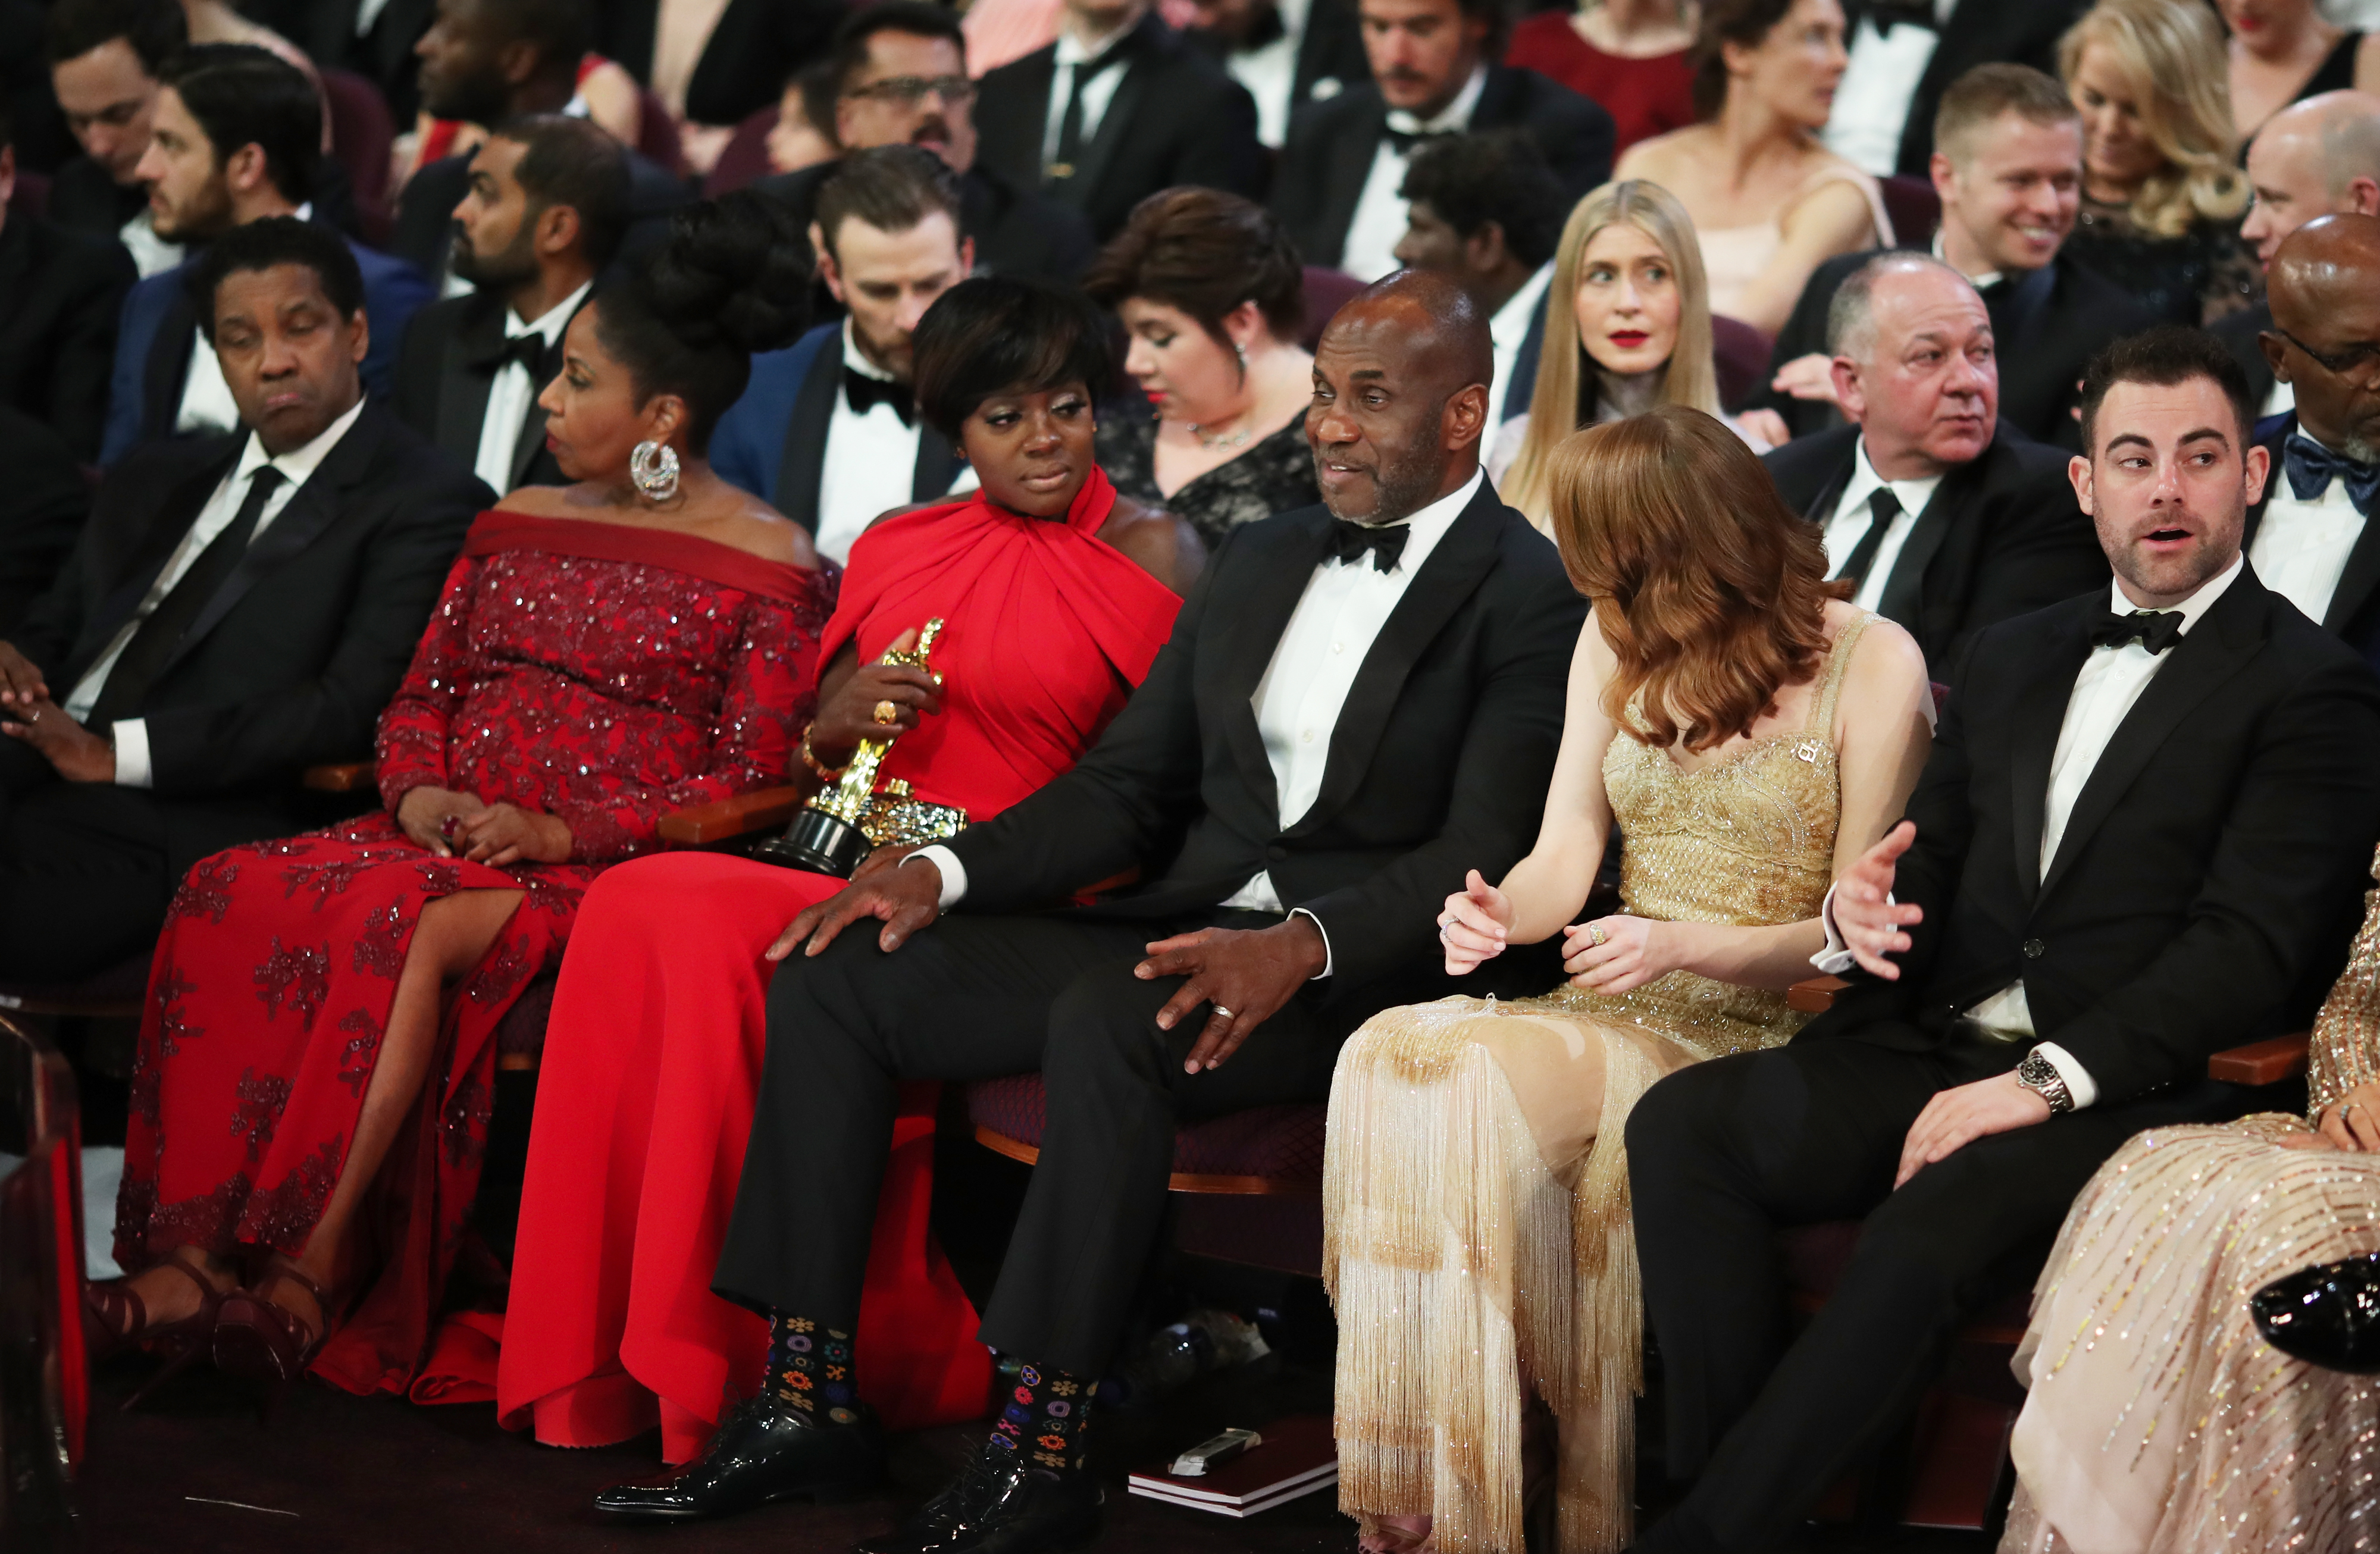 Backstage at the Academy Awards — The Undefeated